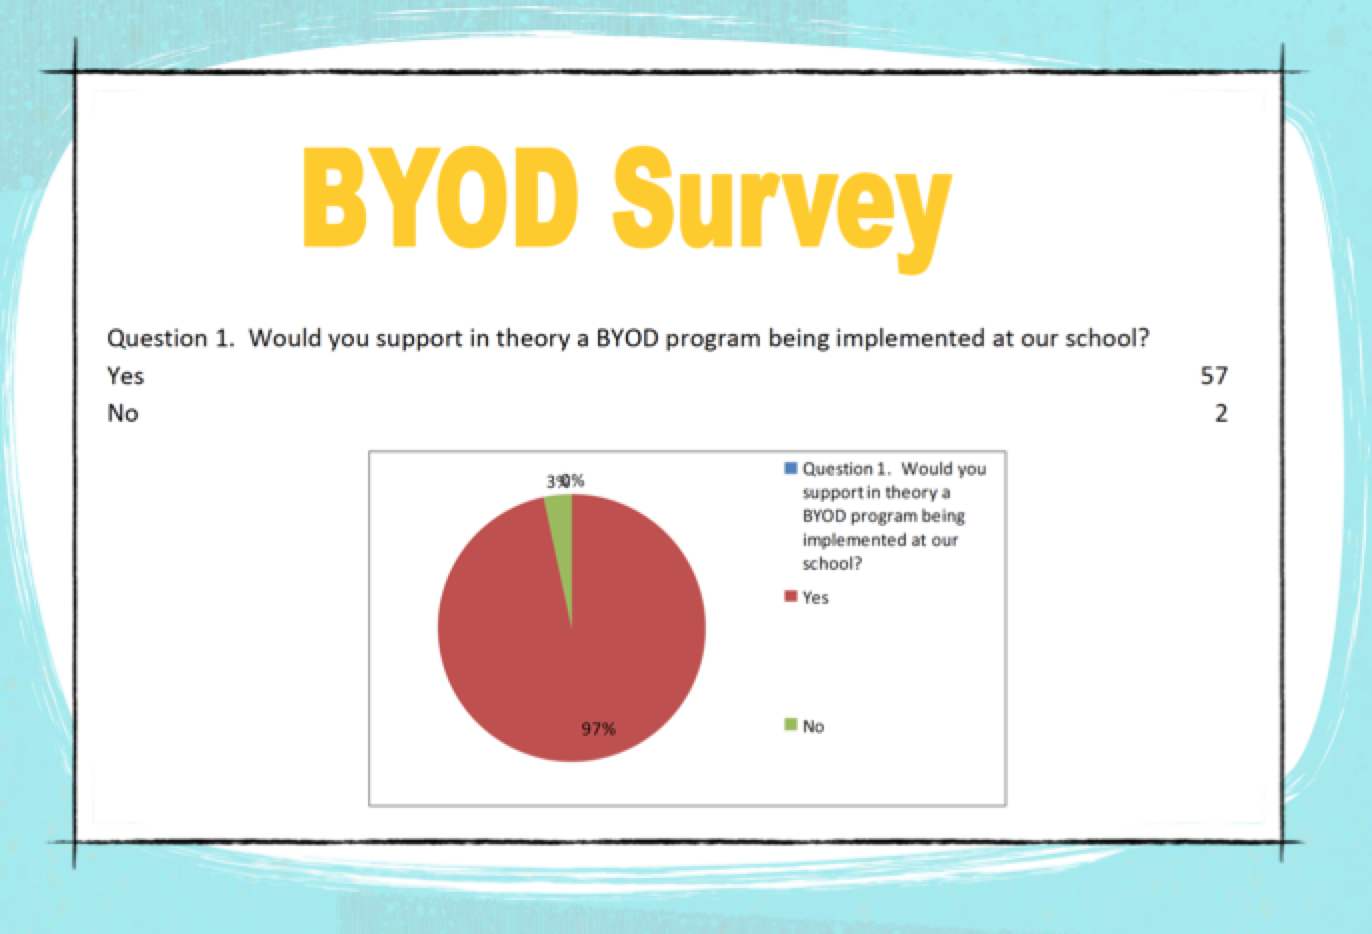 The survey of Going Forward with BYOD